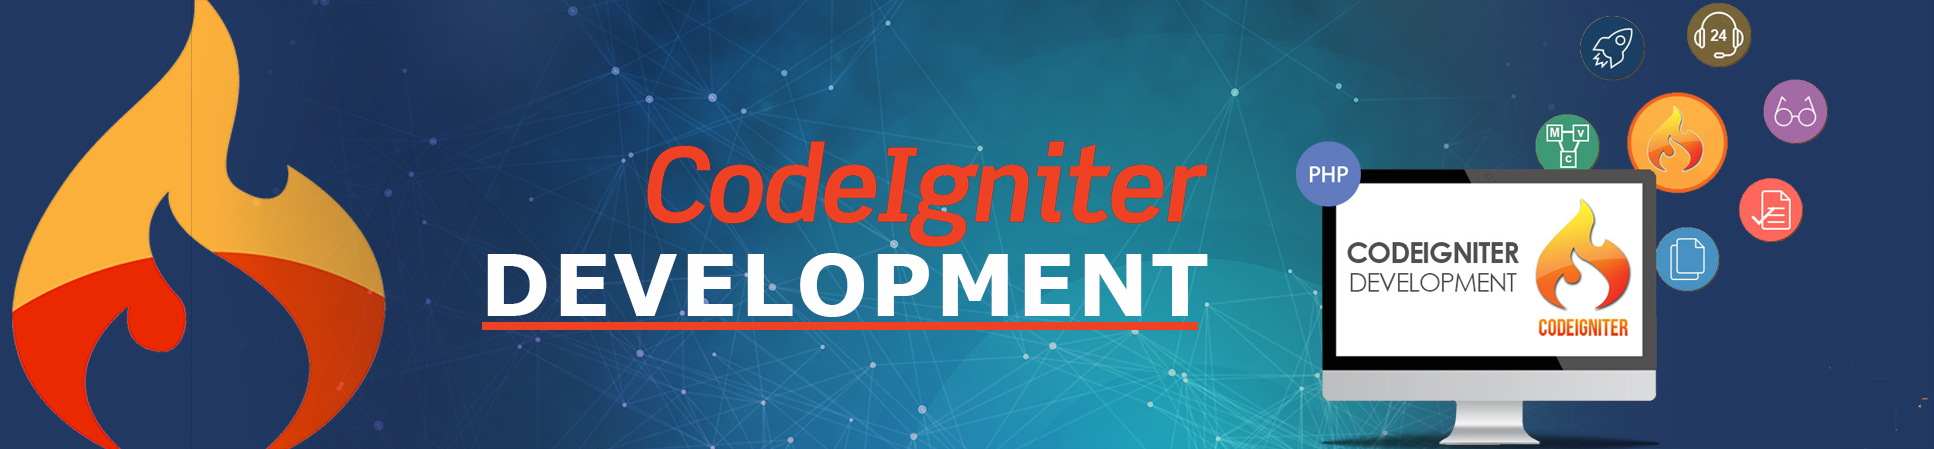 Codeigniter Development | Webarian Softwares | Web